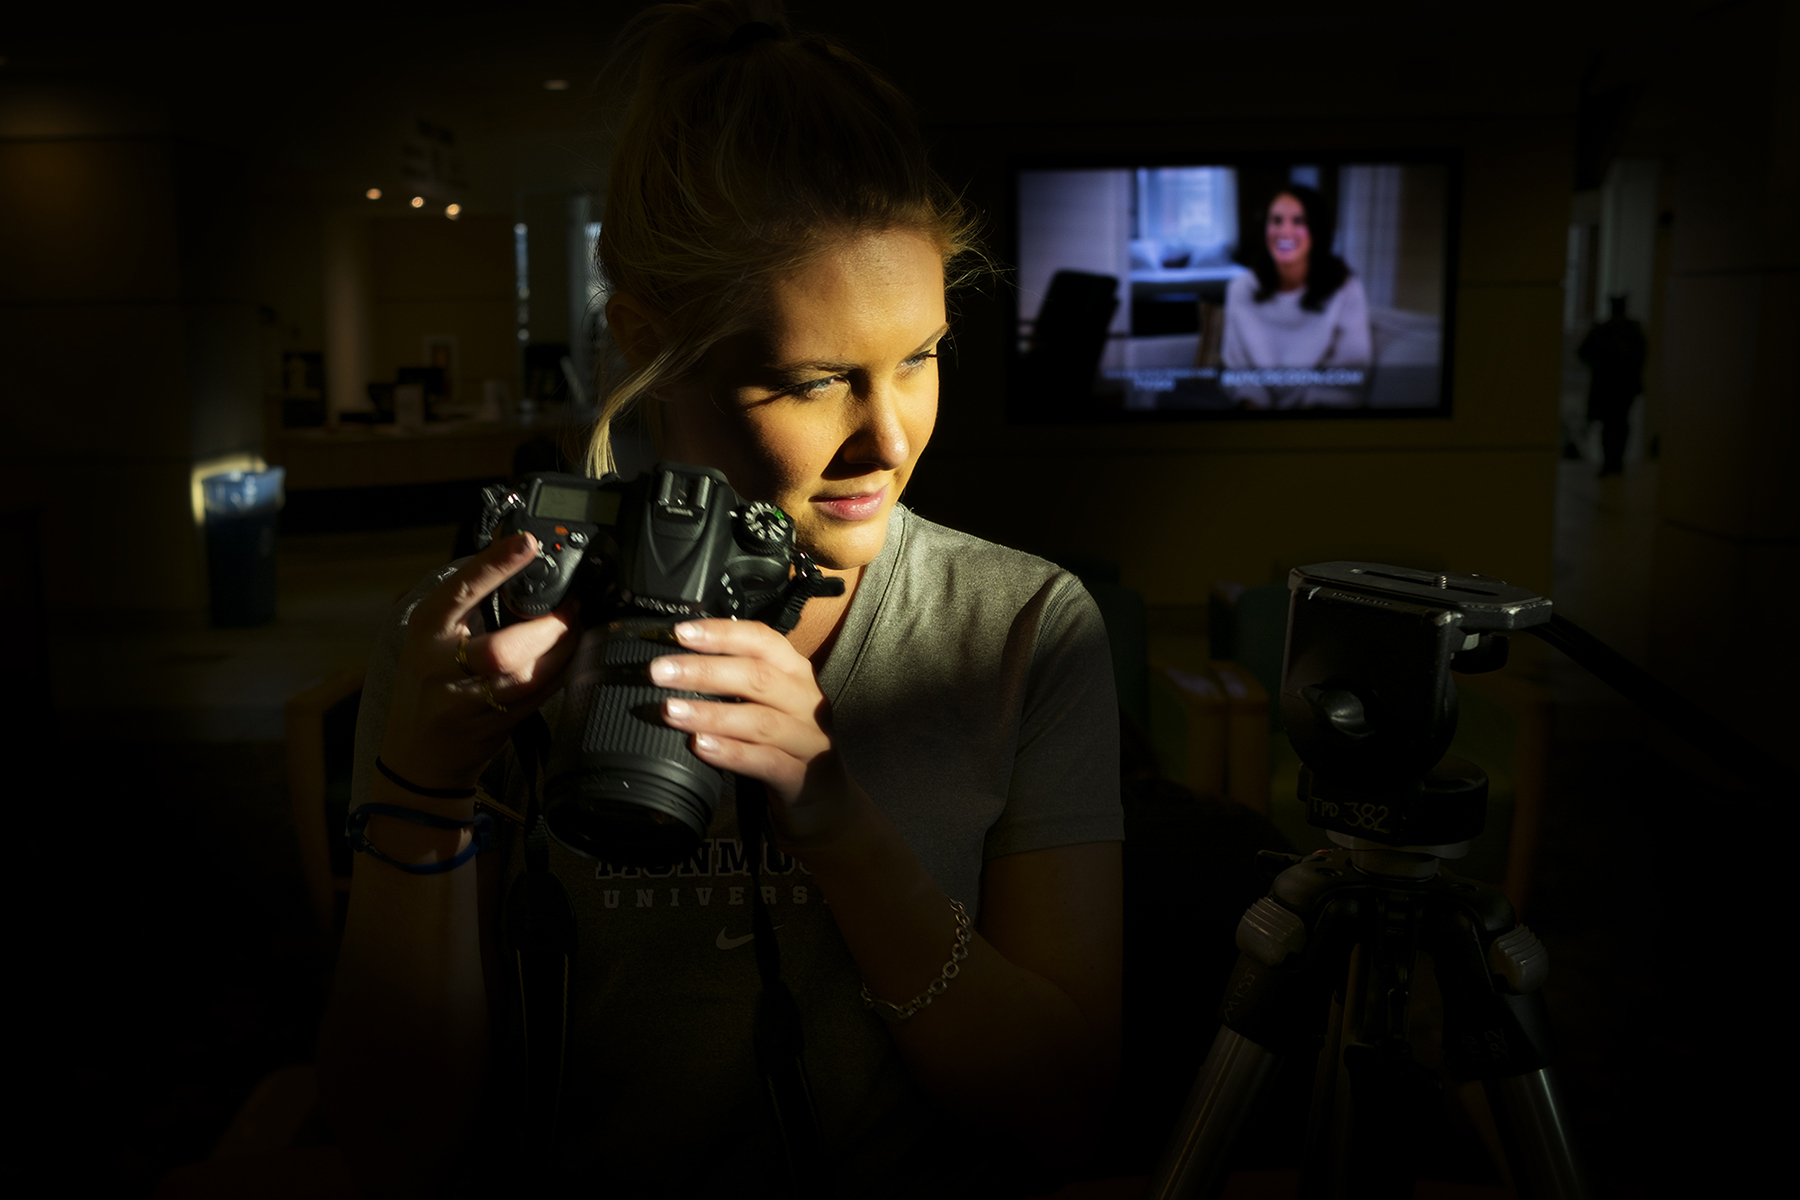 A young woman's face and camera are lit by stylish light with a very dark, moody background